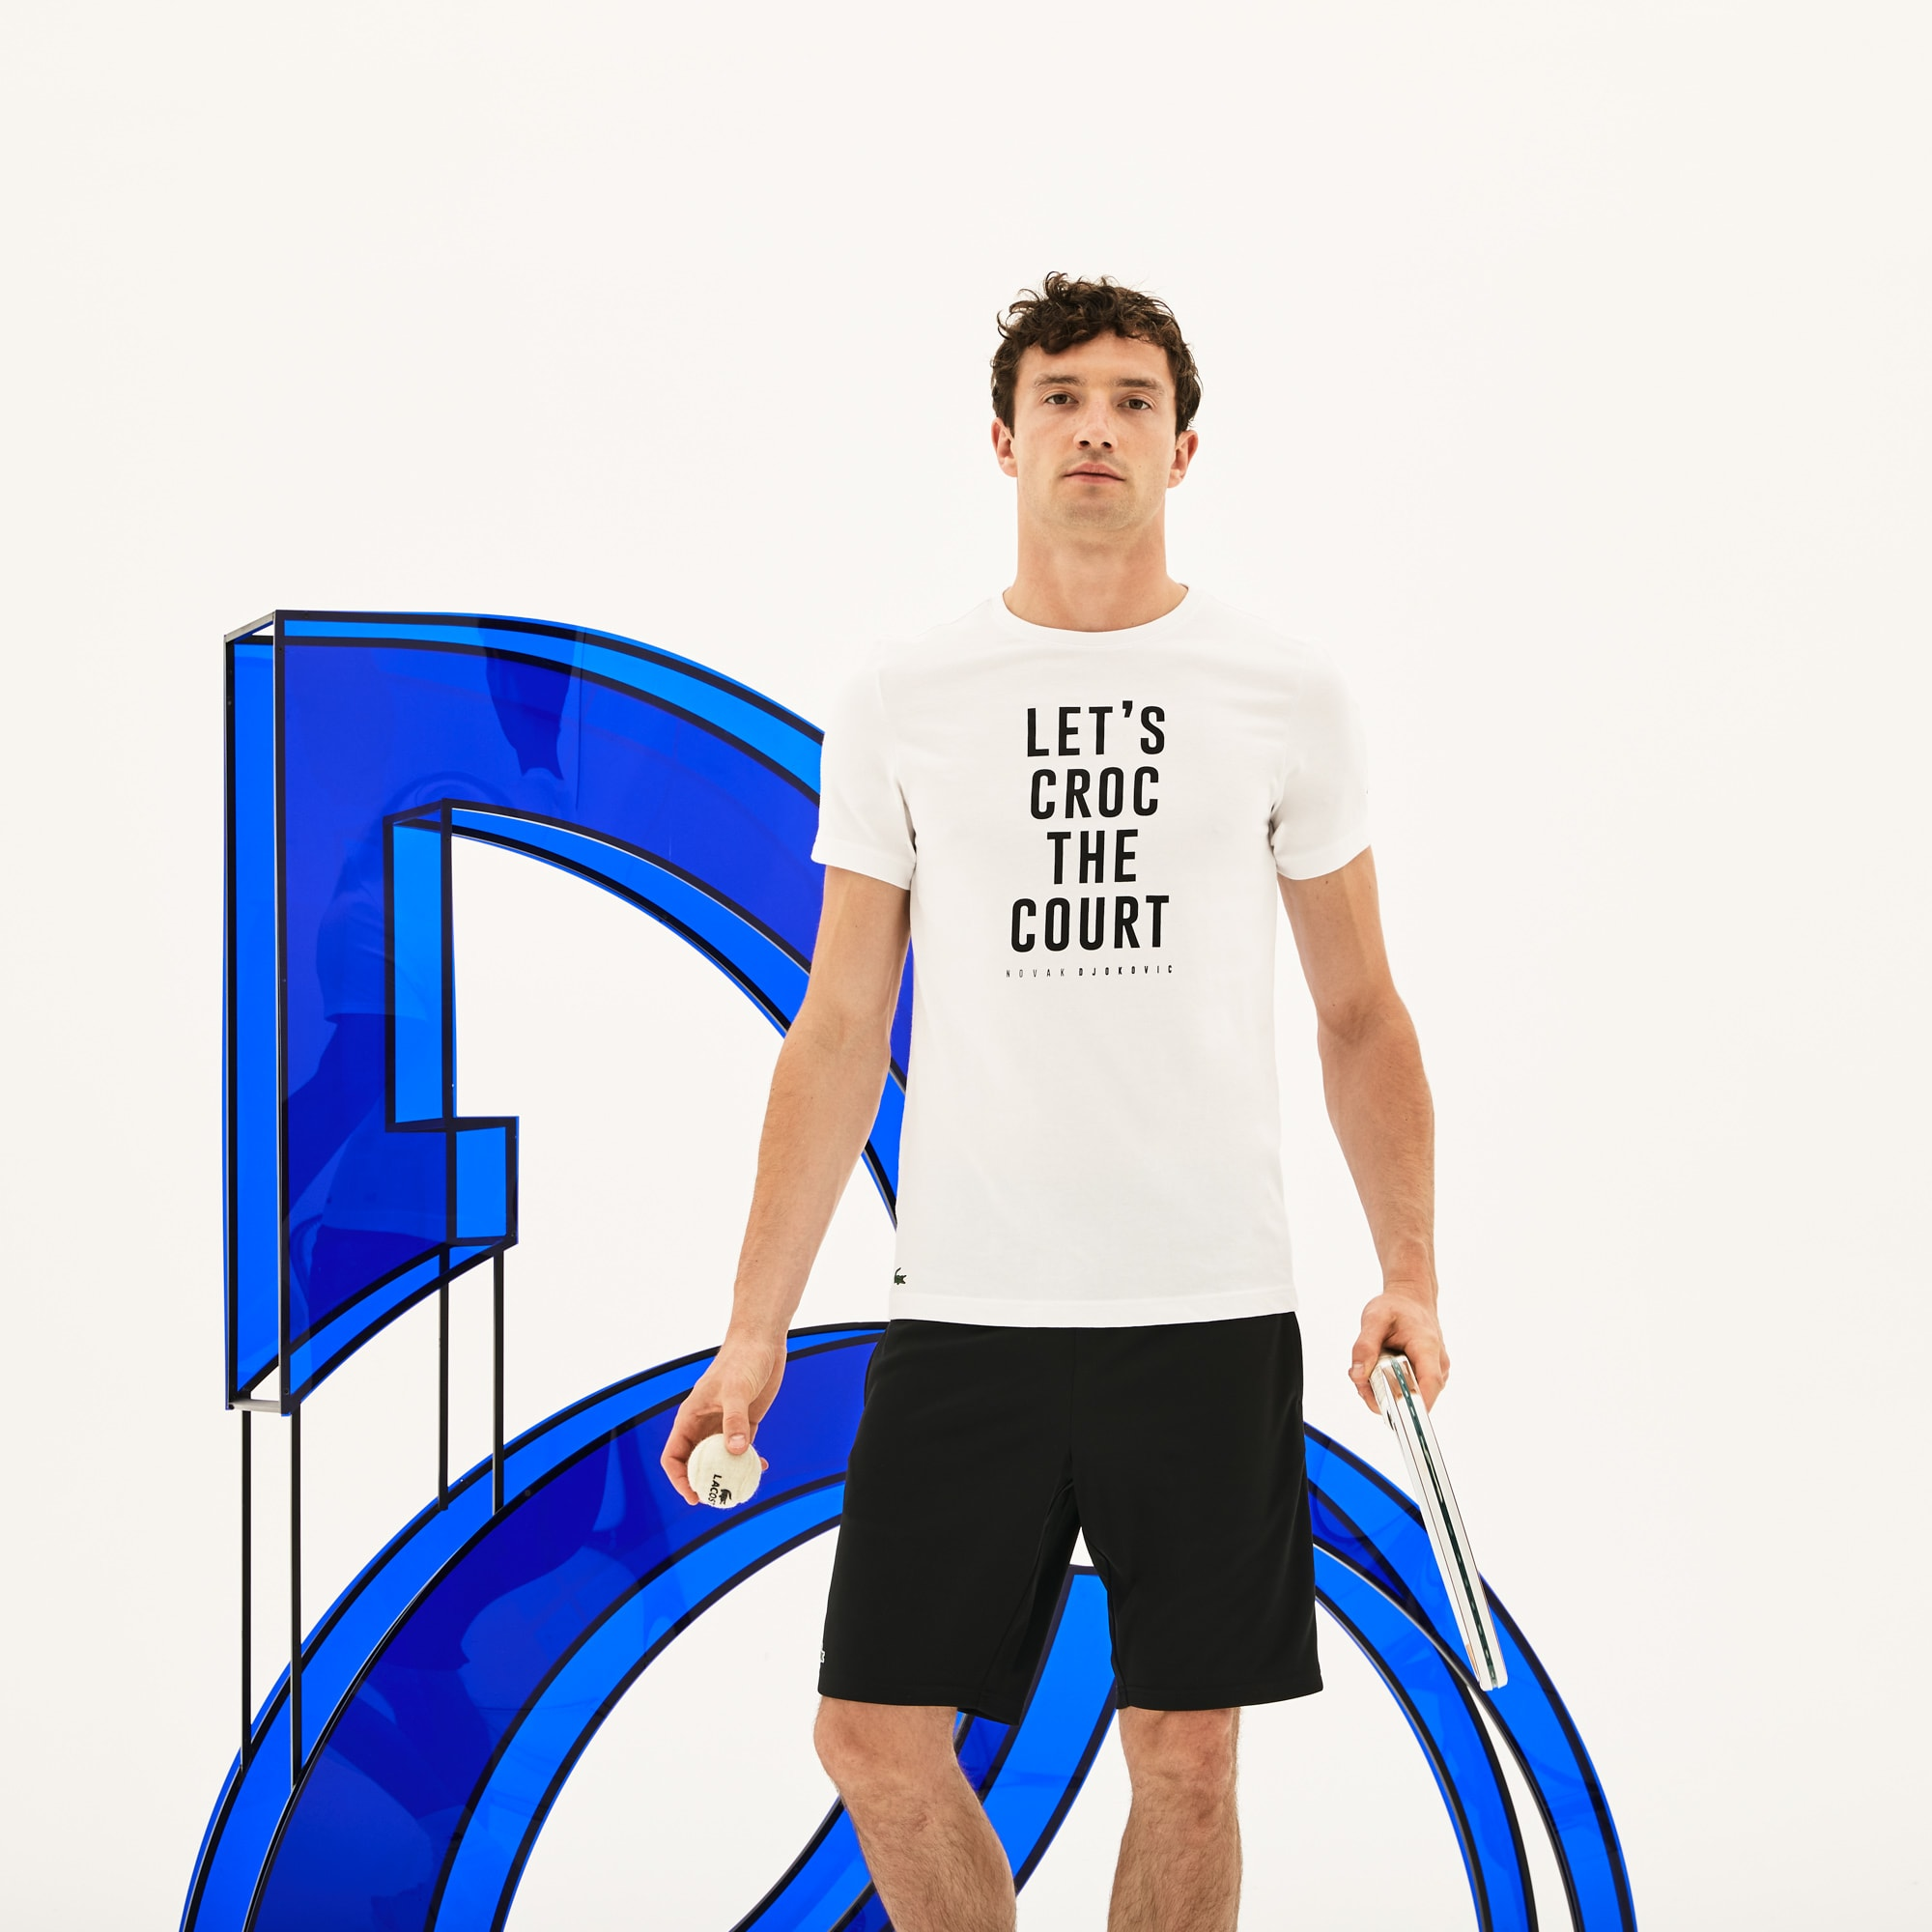 Men's Lacoste SPORT NOVAK DJOKOVIC SUPPORT WITH STYLE - OFF COURT COLLECTION Crew Neck Lettering Technical Jersey T-shirt